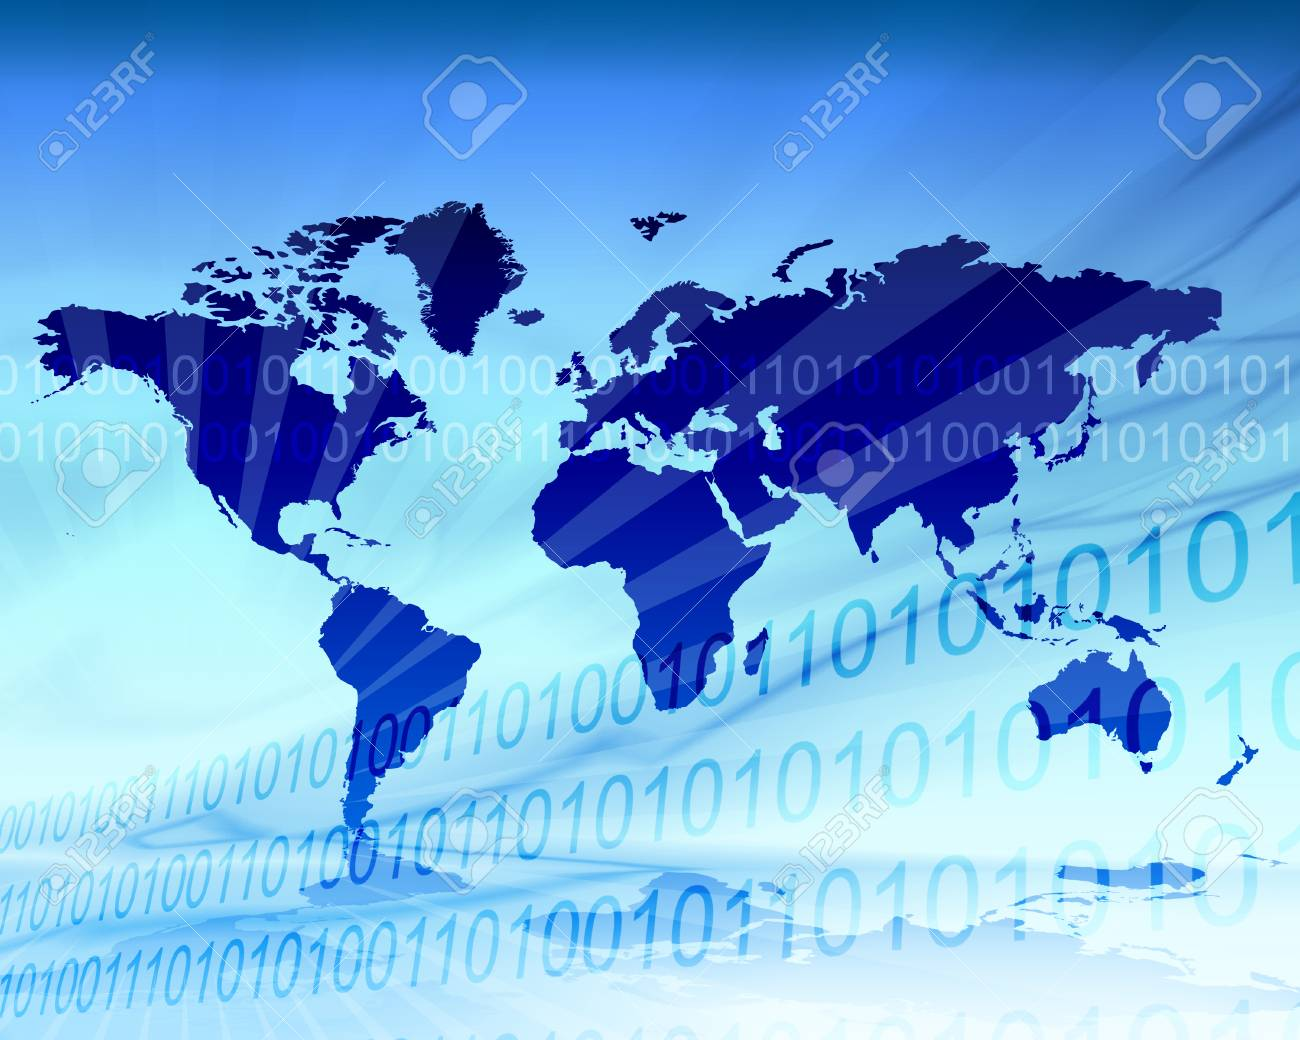 Cool blue world map illustration in zero and one binary background cool blue world map illustration in zero and one binary background stock illustration 39332281 gumiabroncs Image collections